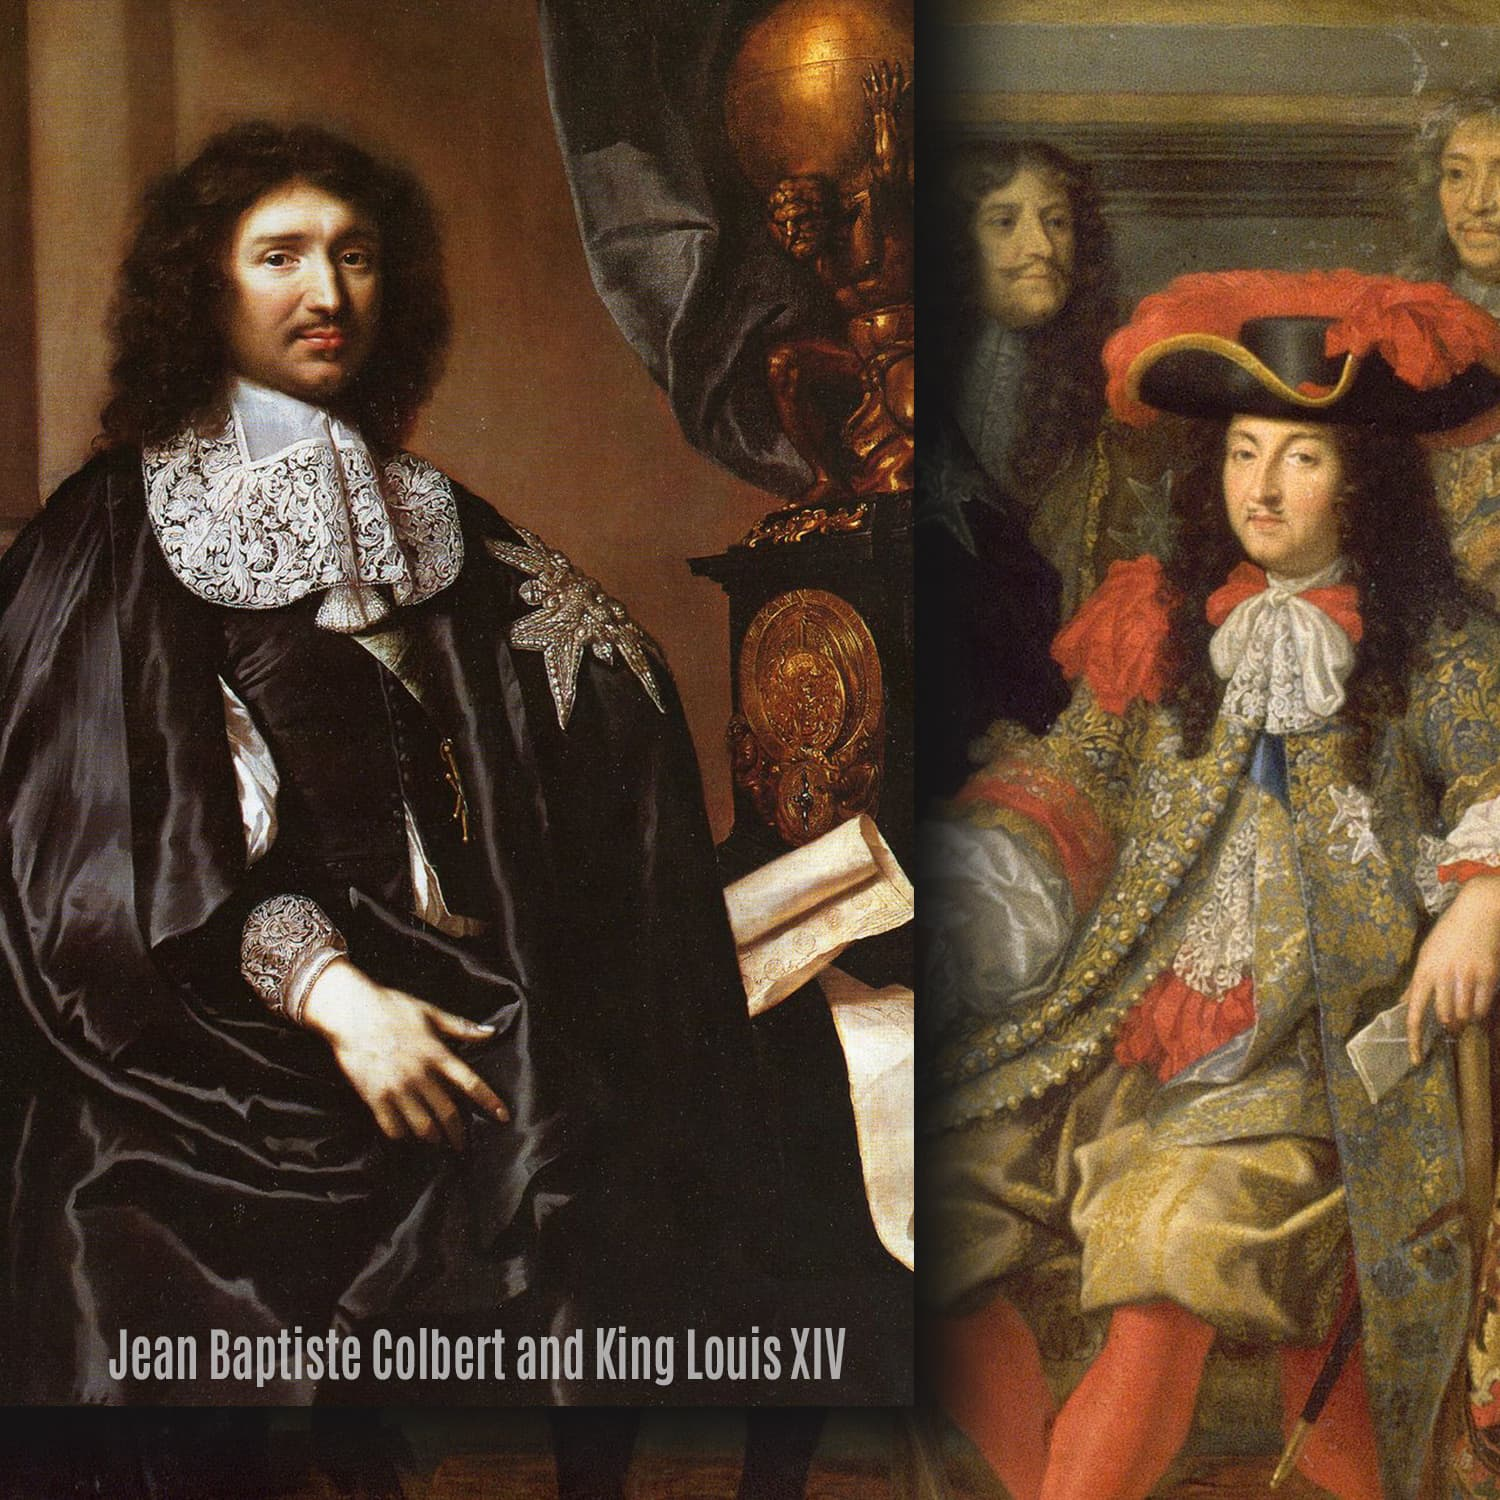 Jean Baptiste Colbert and King Louis XIV